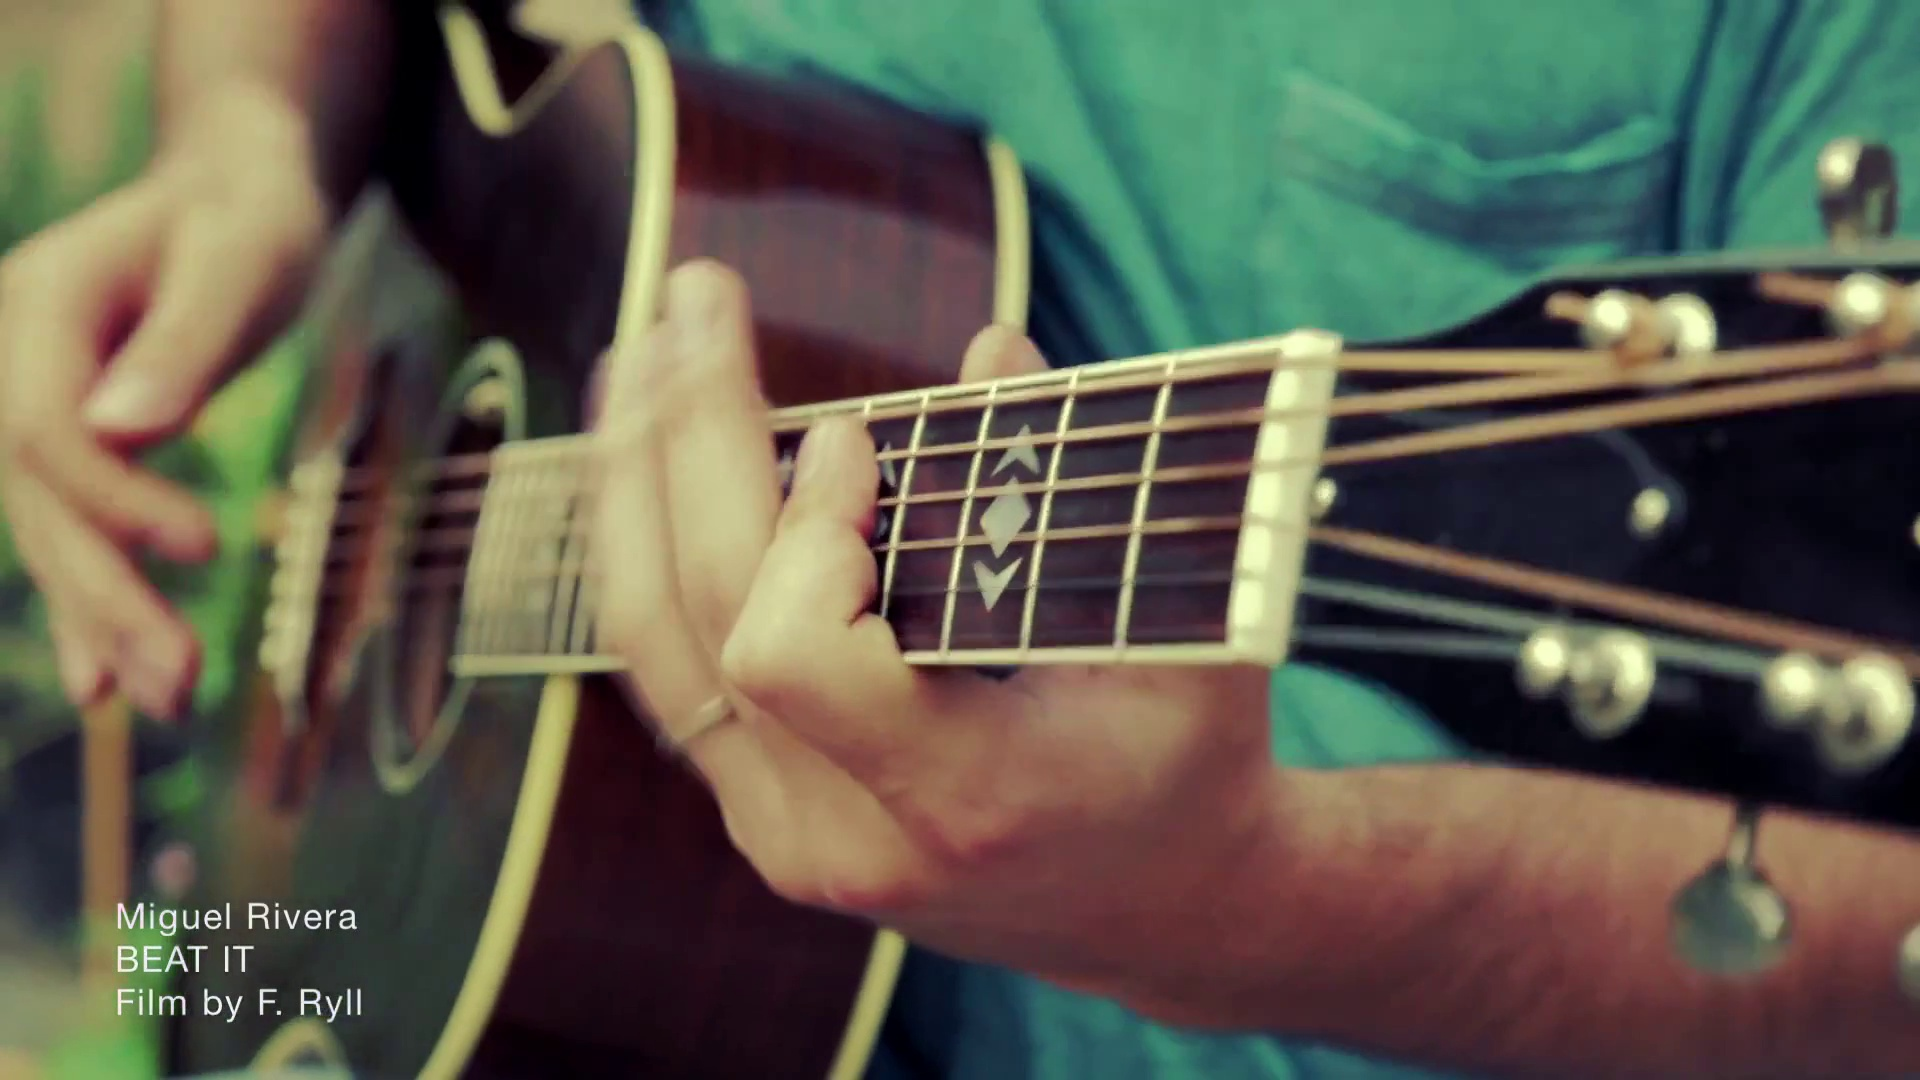 Talented guitar player covers Beat It (Michael Jackson) – Insane Solo guitar